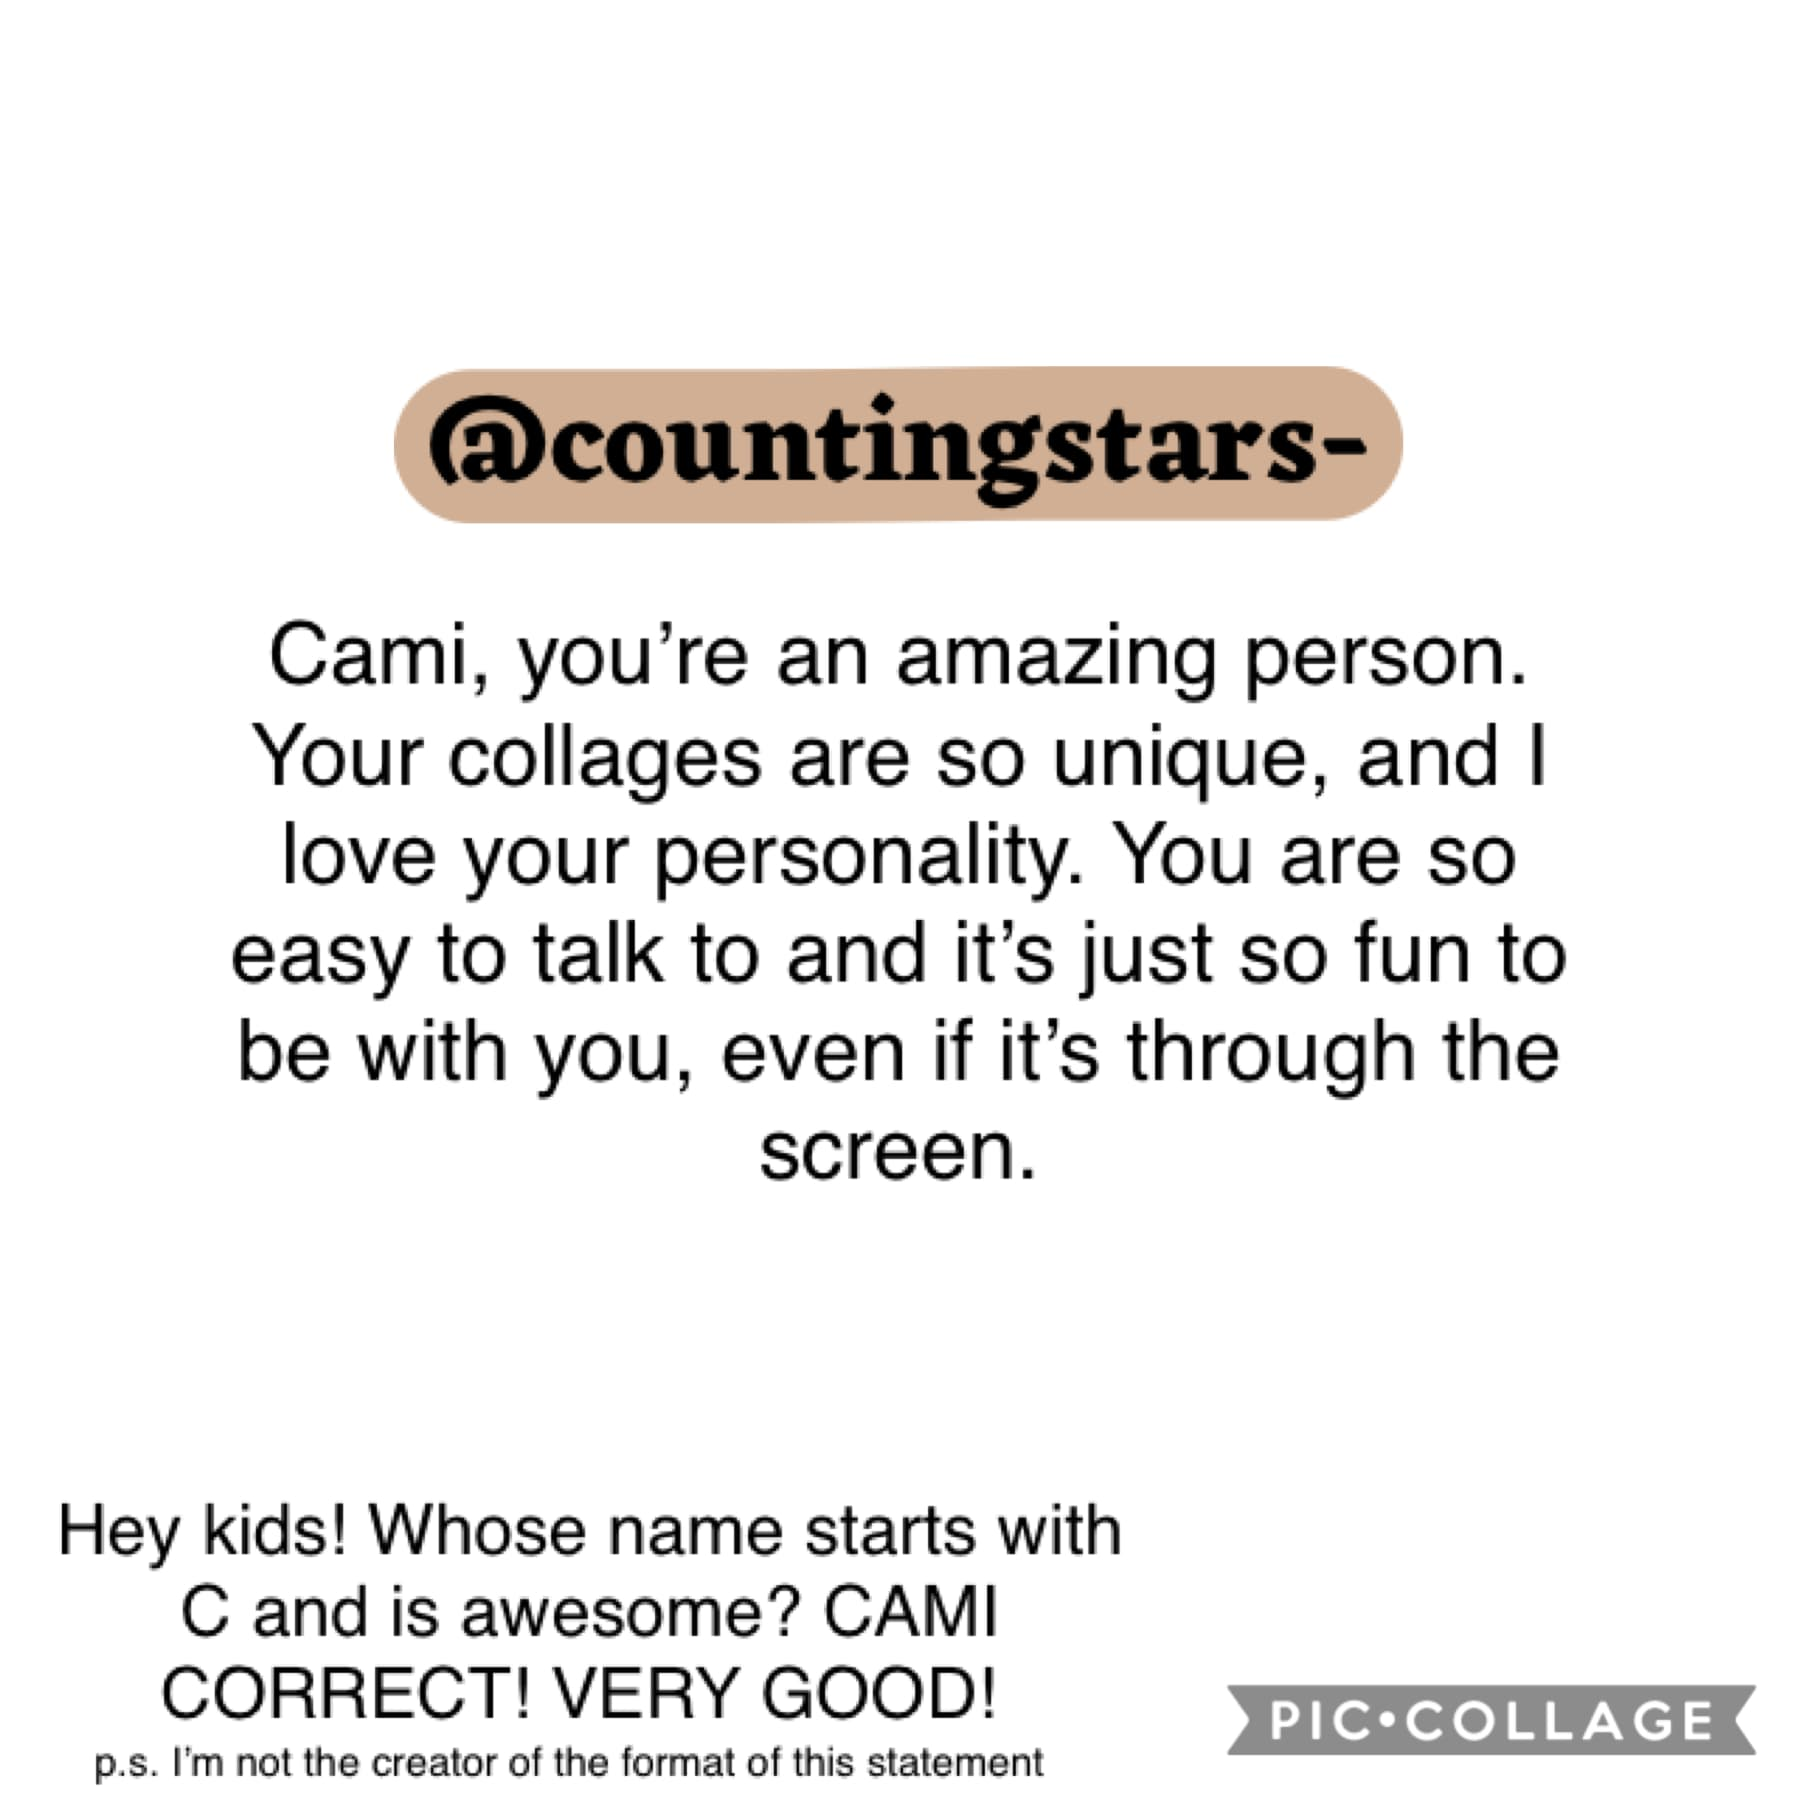 Cami, you're a star